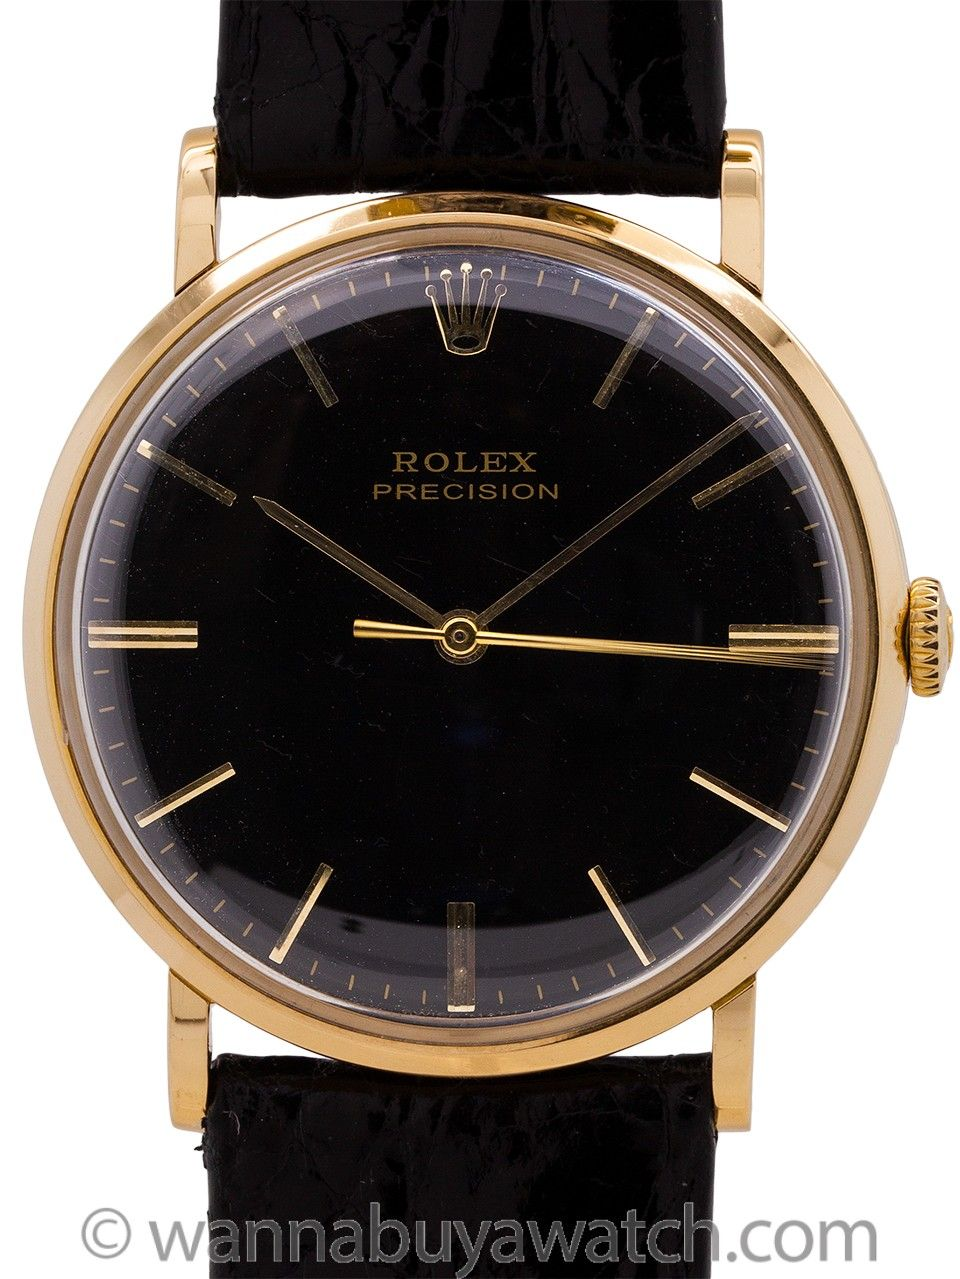 daa4ec59e547f Rolex Precision Dress Model 18K YG circa 1950 - Rolex Dress model 18K YG  circa 1950 s. Featuring 34 X 39mm snap back case with smooth bezel and low  dome ...